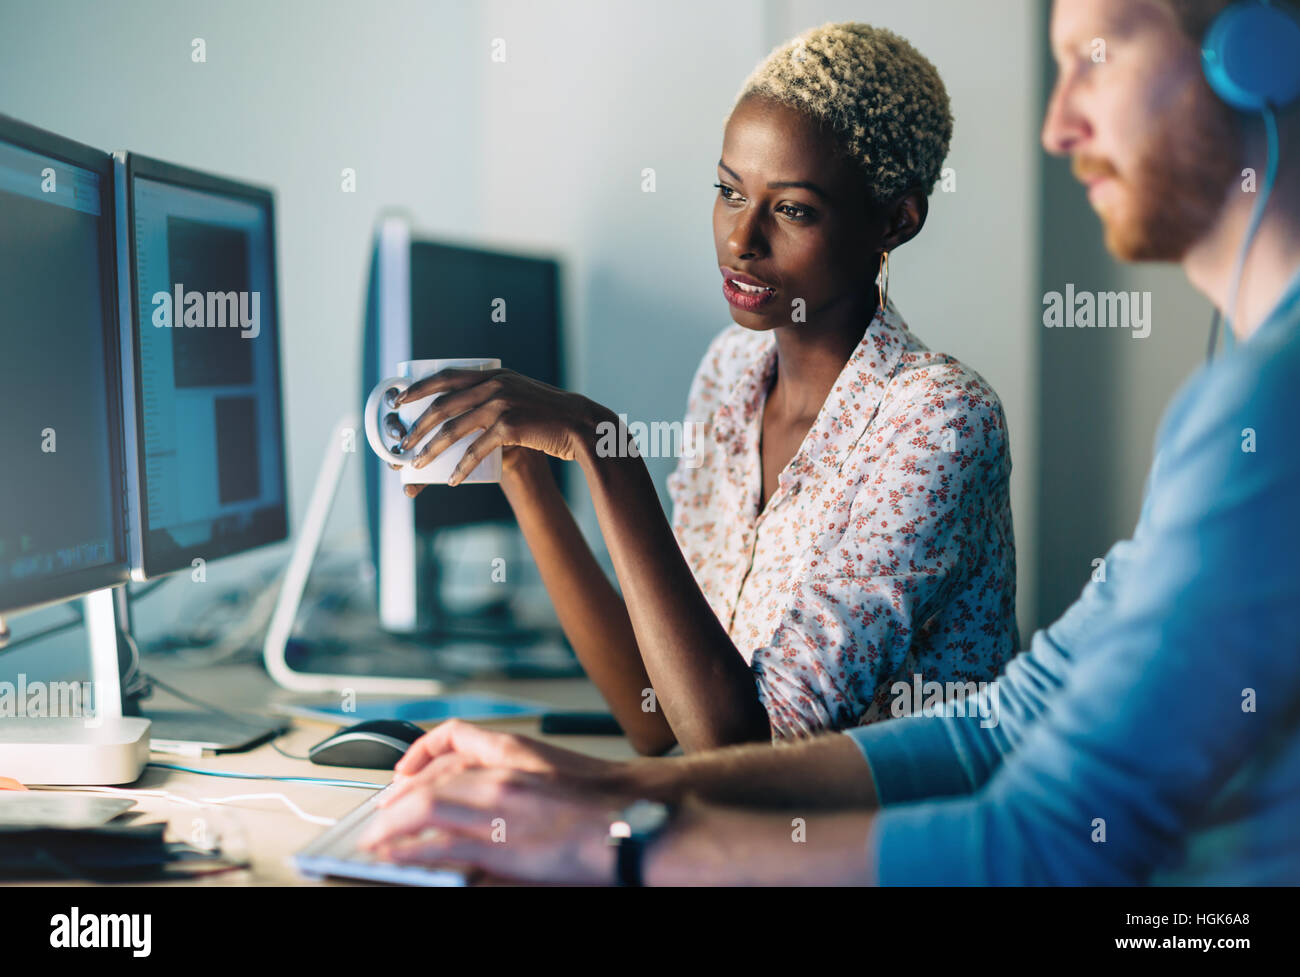 Programmers cooperating at  IT company developing apps - Stock Image